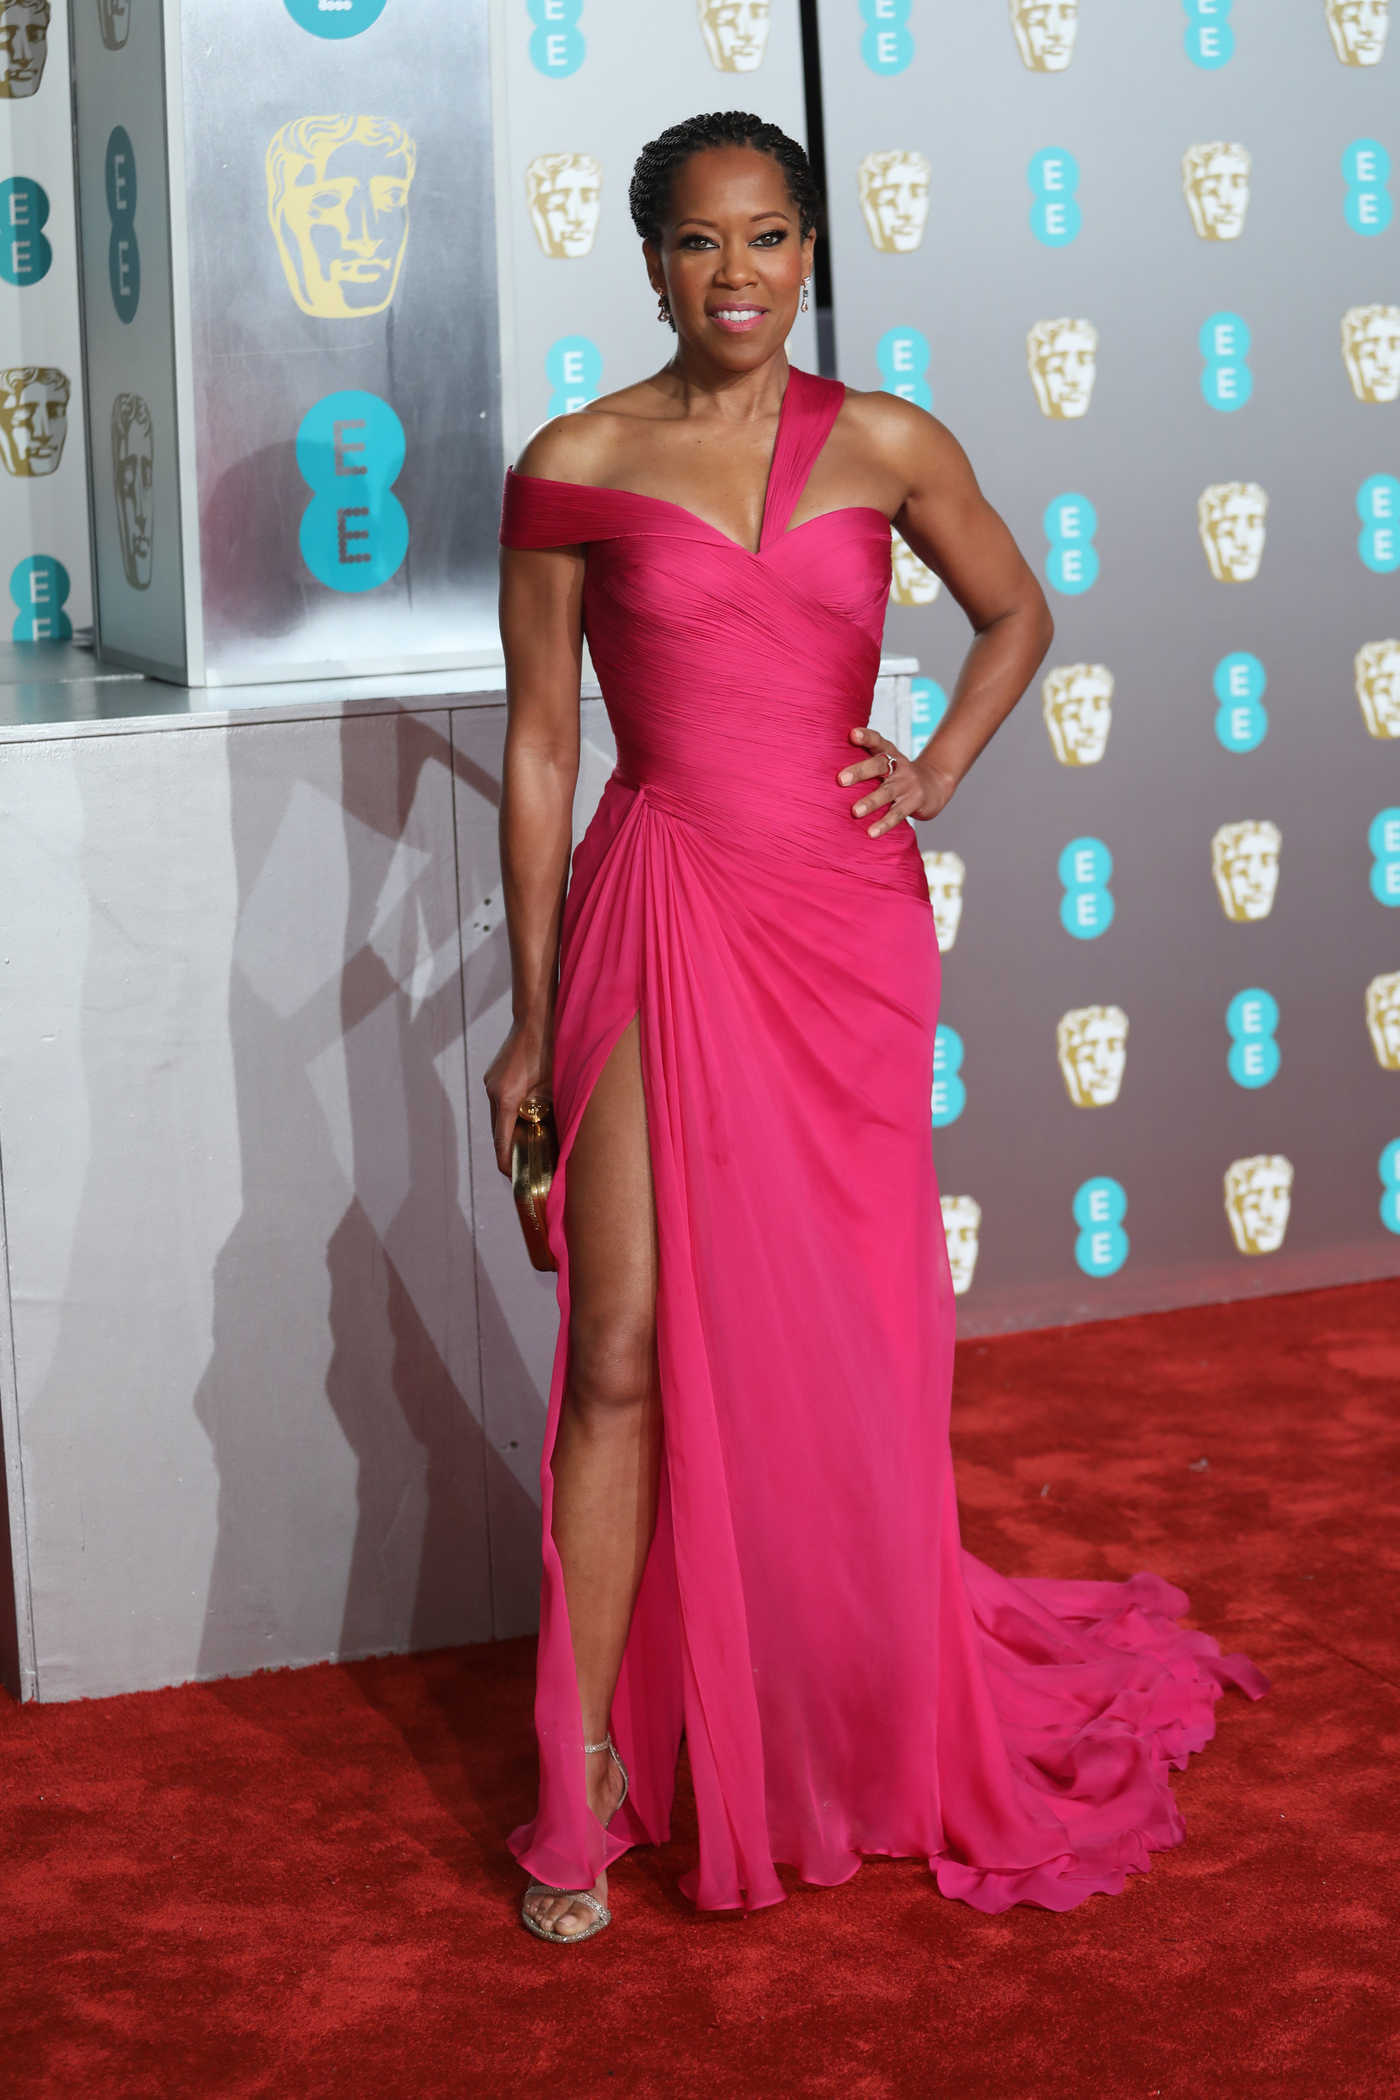 Regina King Attends 2019 BAFTA Awards in London 02/10/2019